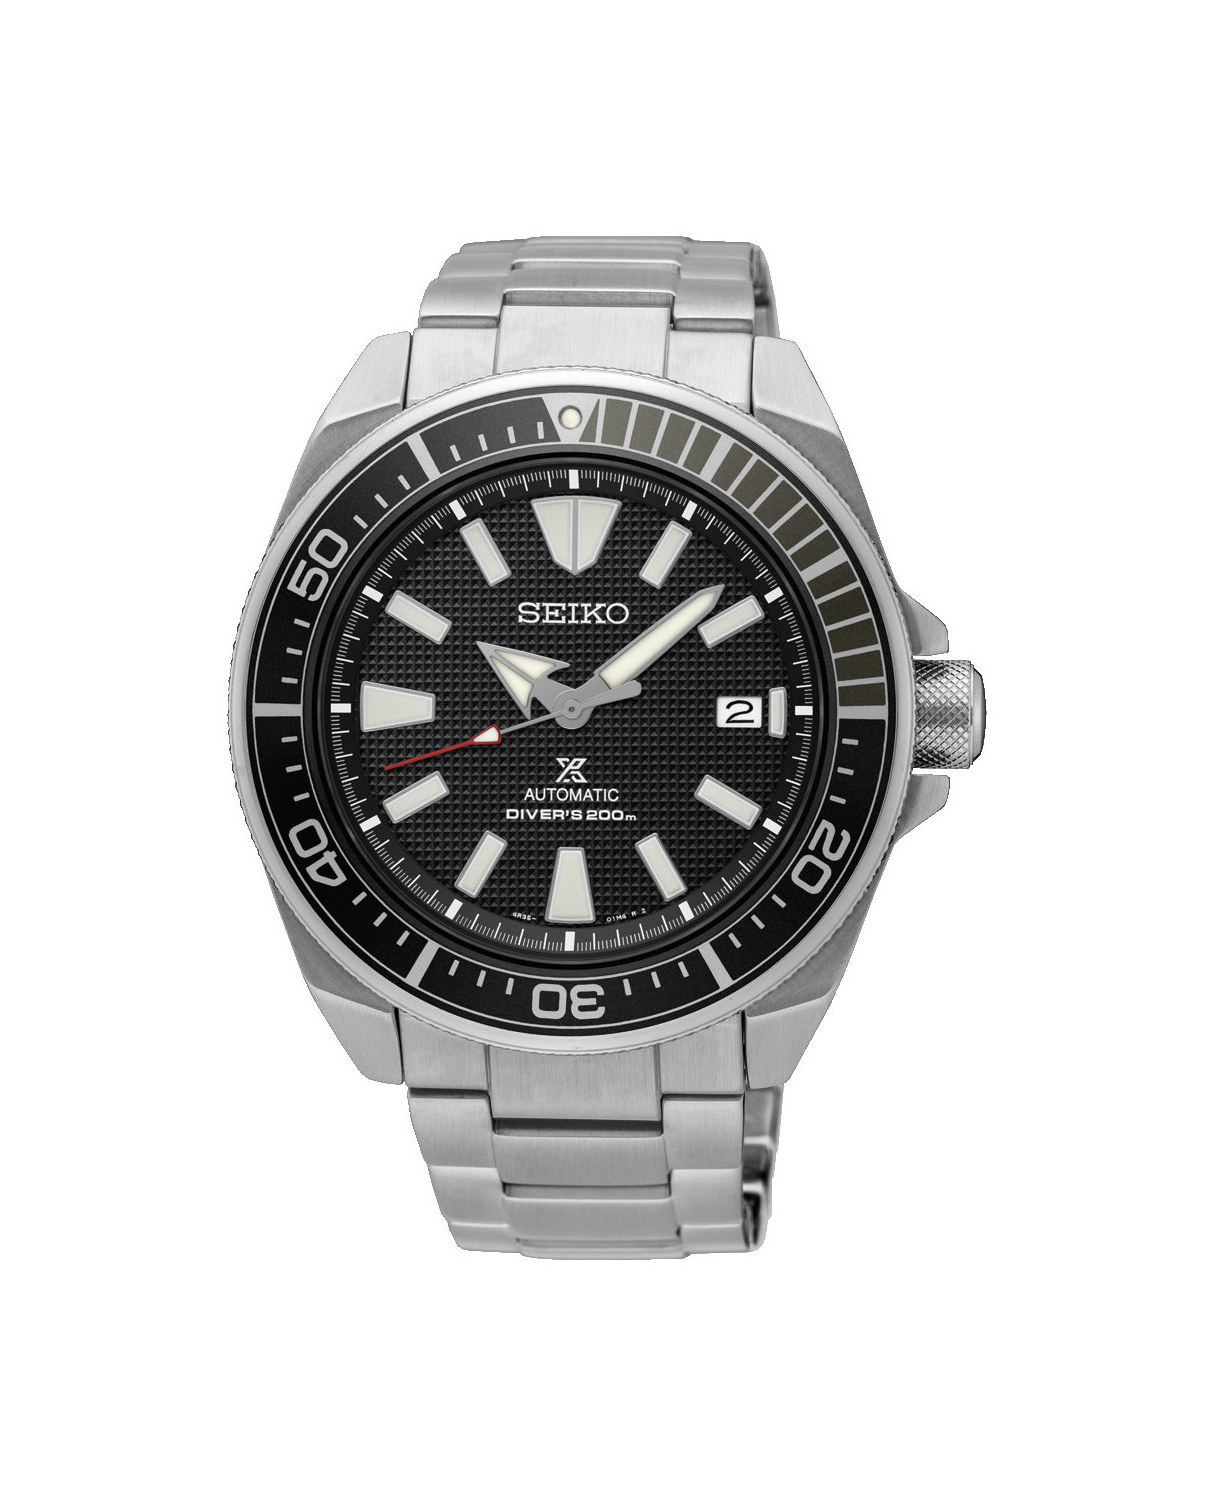 Seiko Prospex SRPB51K Samurai Automatic Divers Gents Watch_0